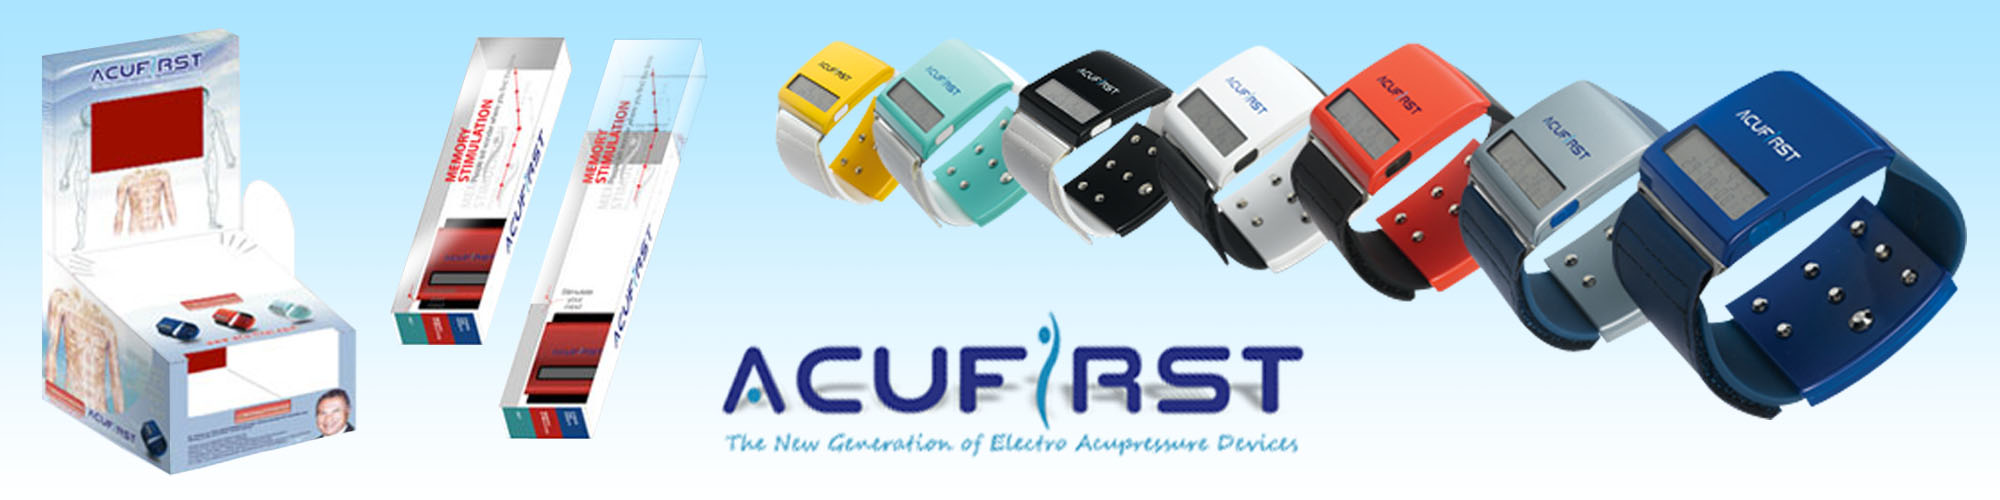 Acufirst